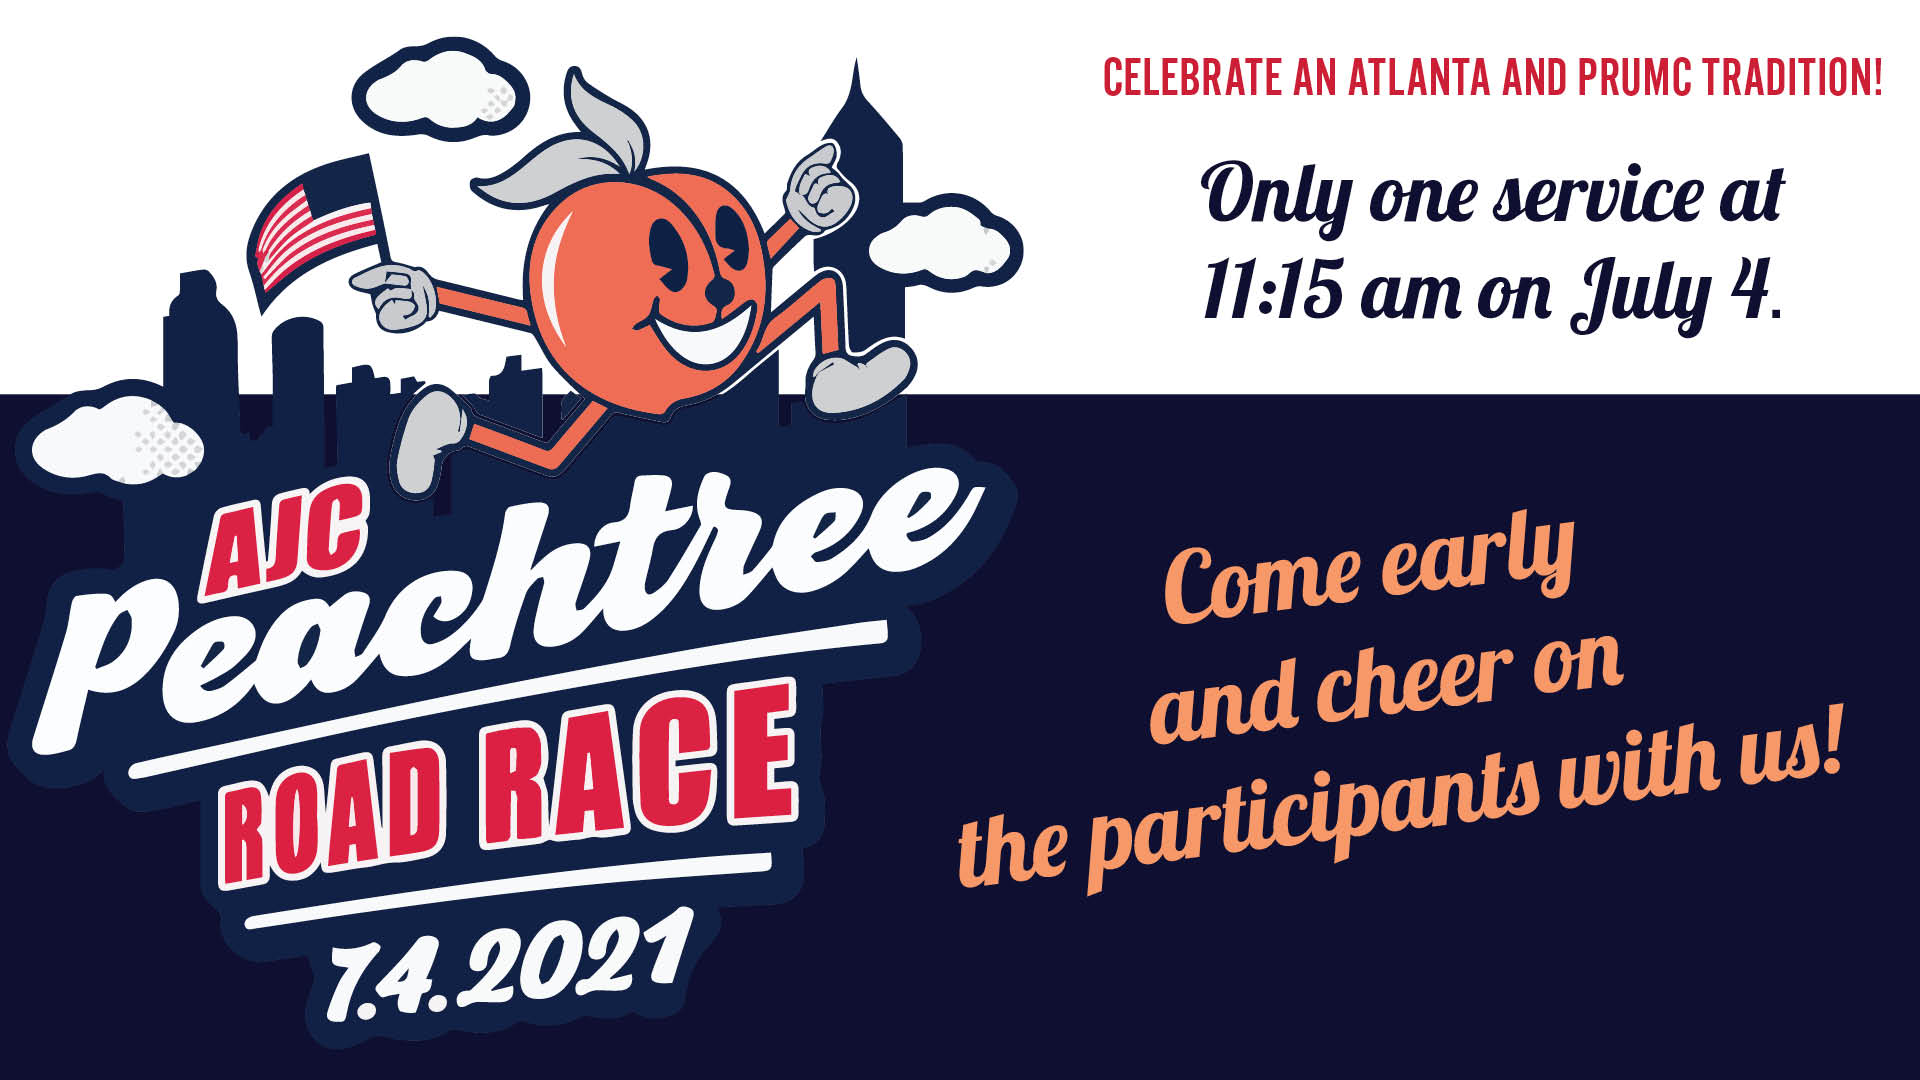 Party on Peachtree Road Race July 4